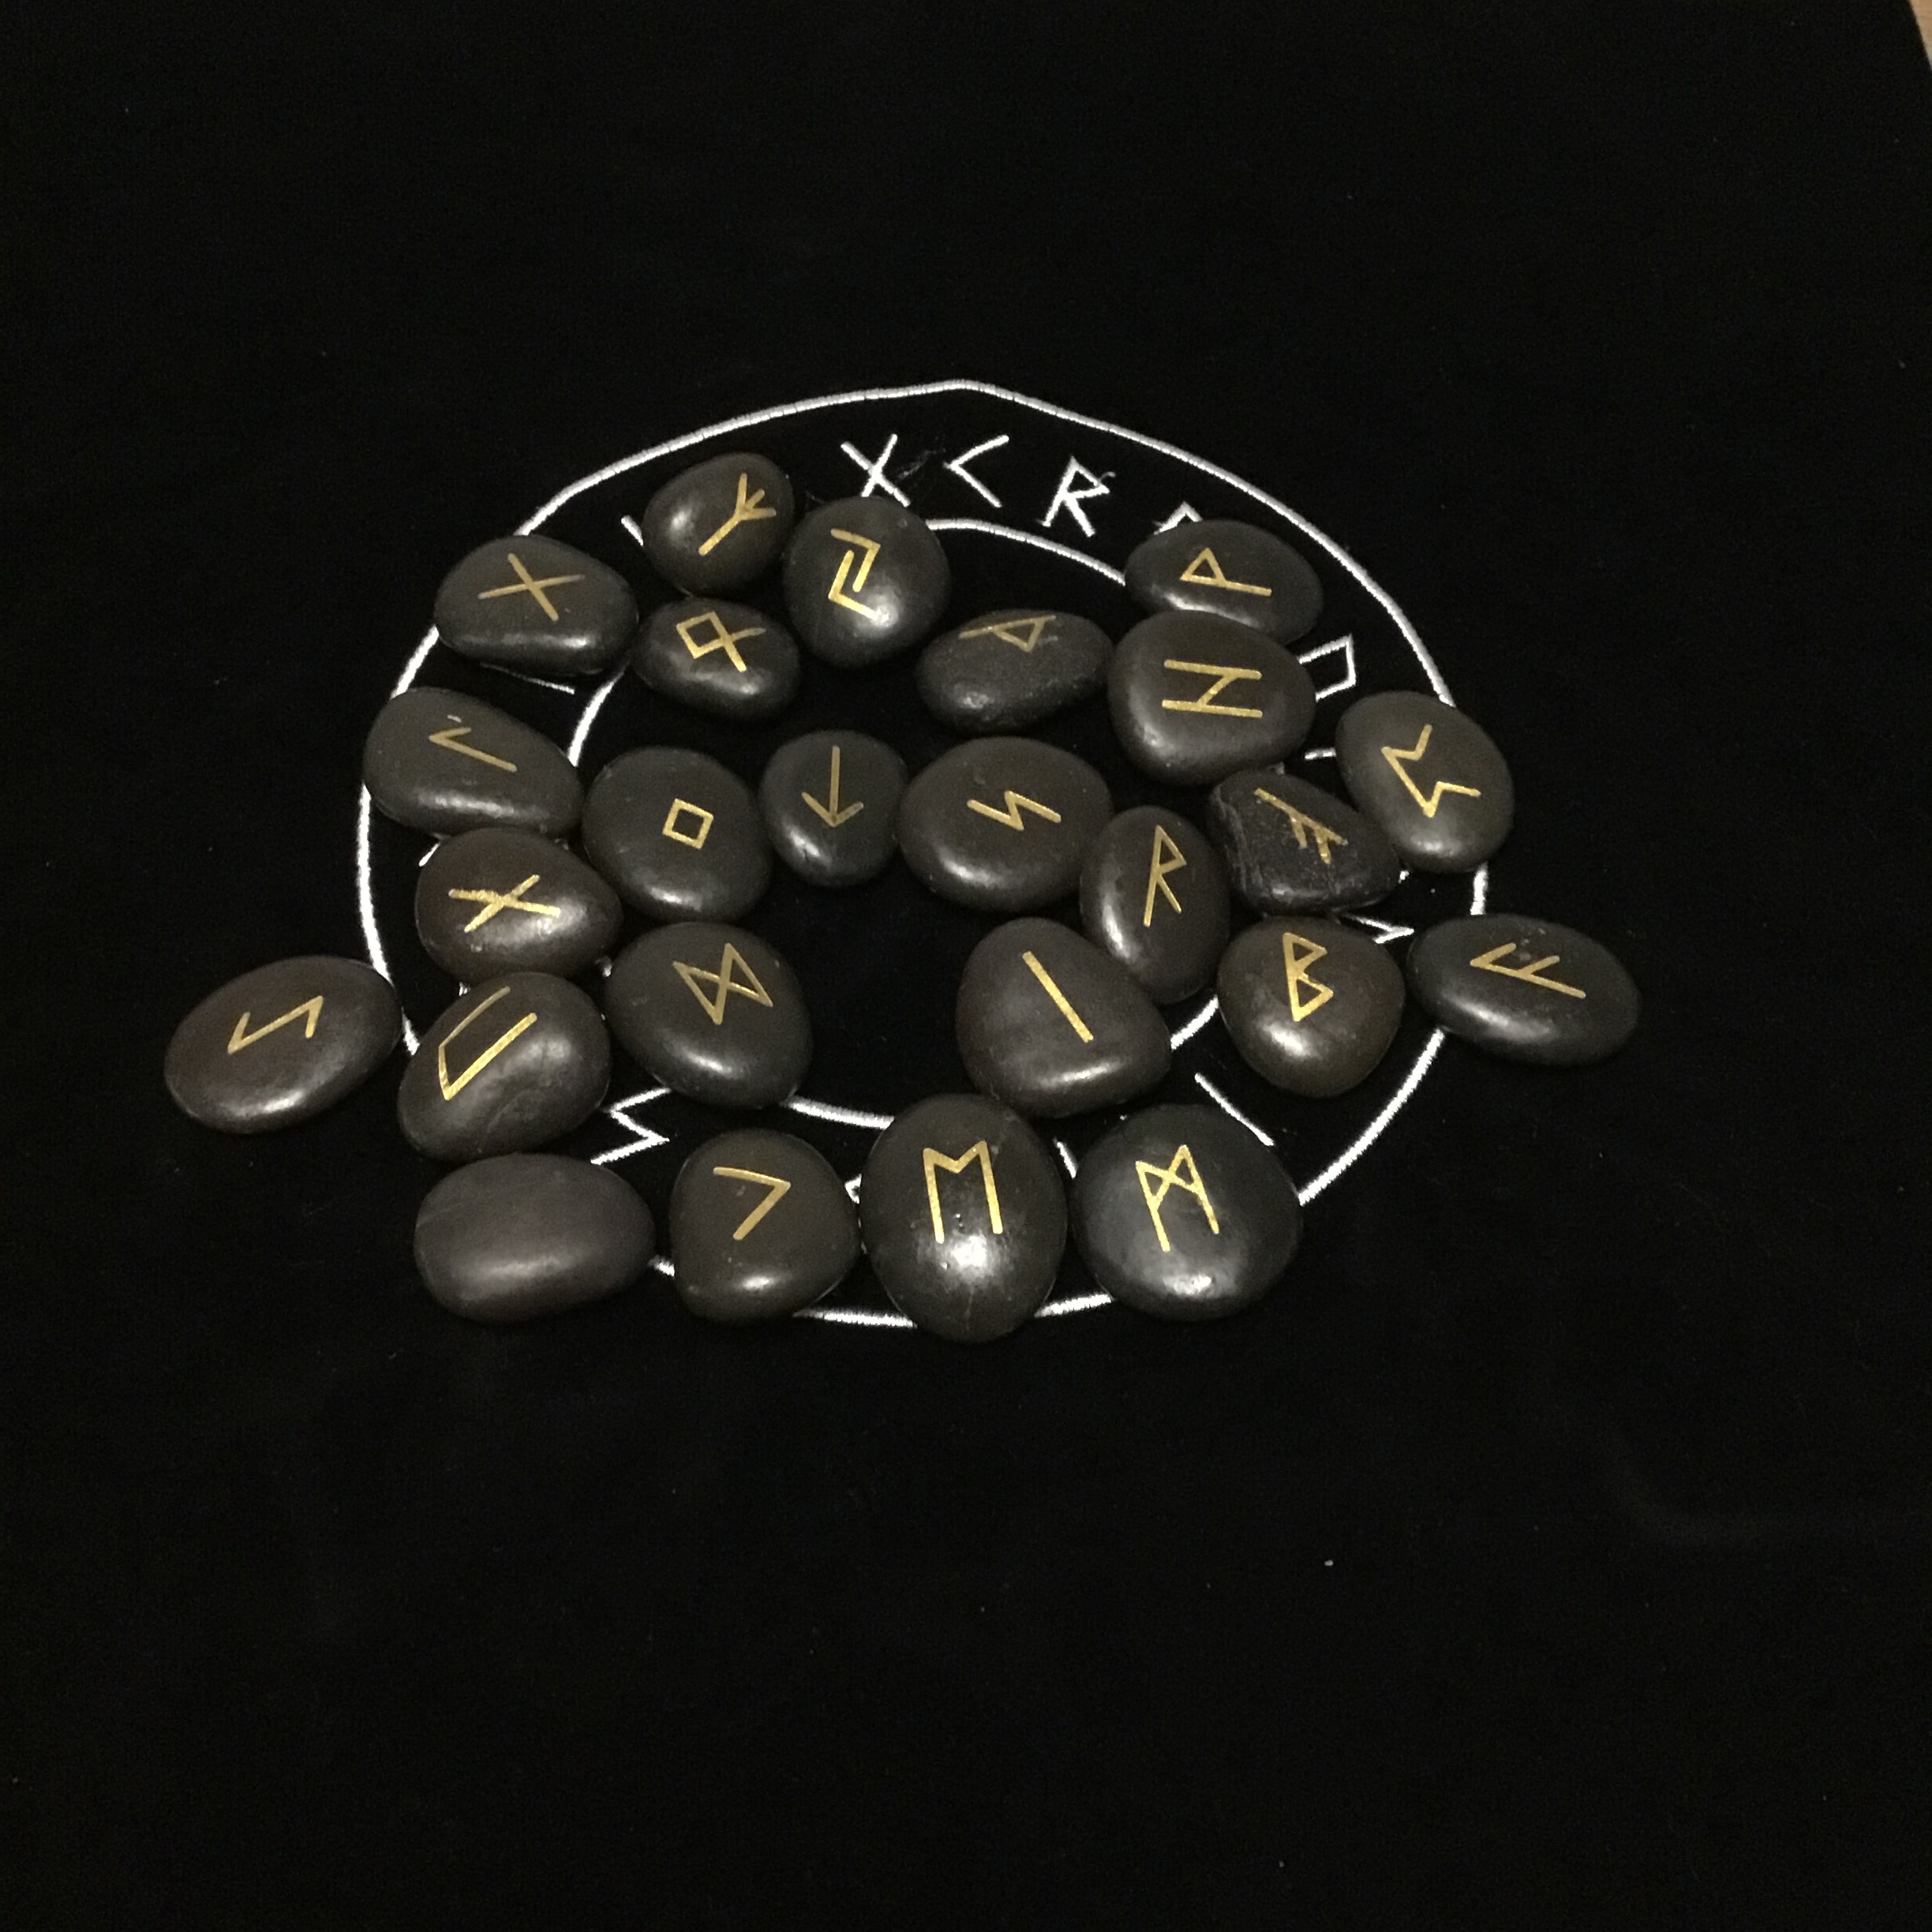 25pcs/set Engraved Riverstones Viking Rune Stones Set Carved Black Lettering Board Game Divination Astrology Altar Amulet Sign